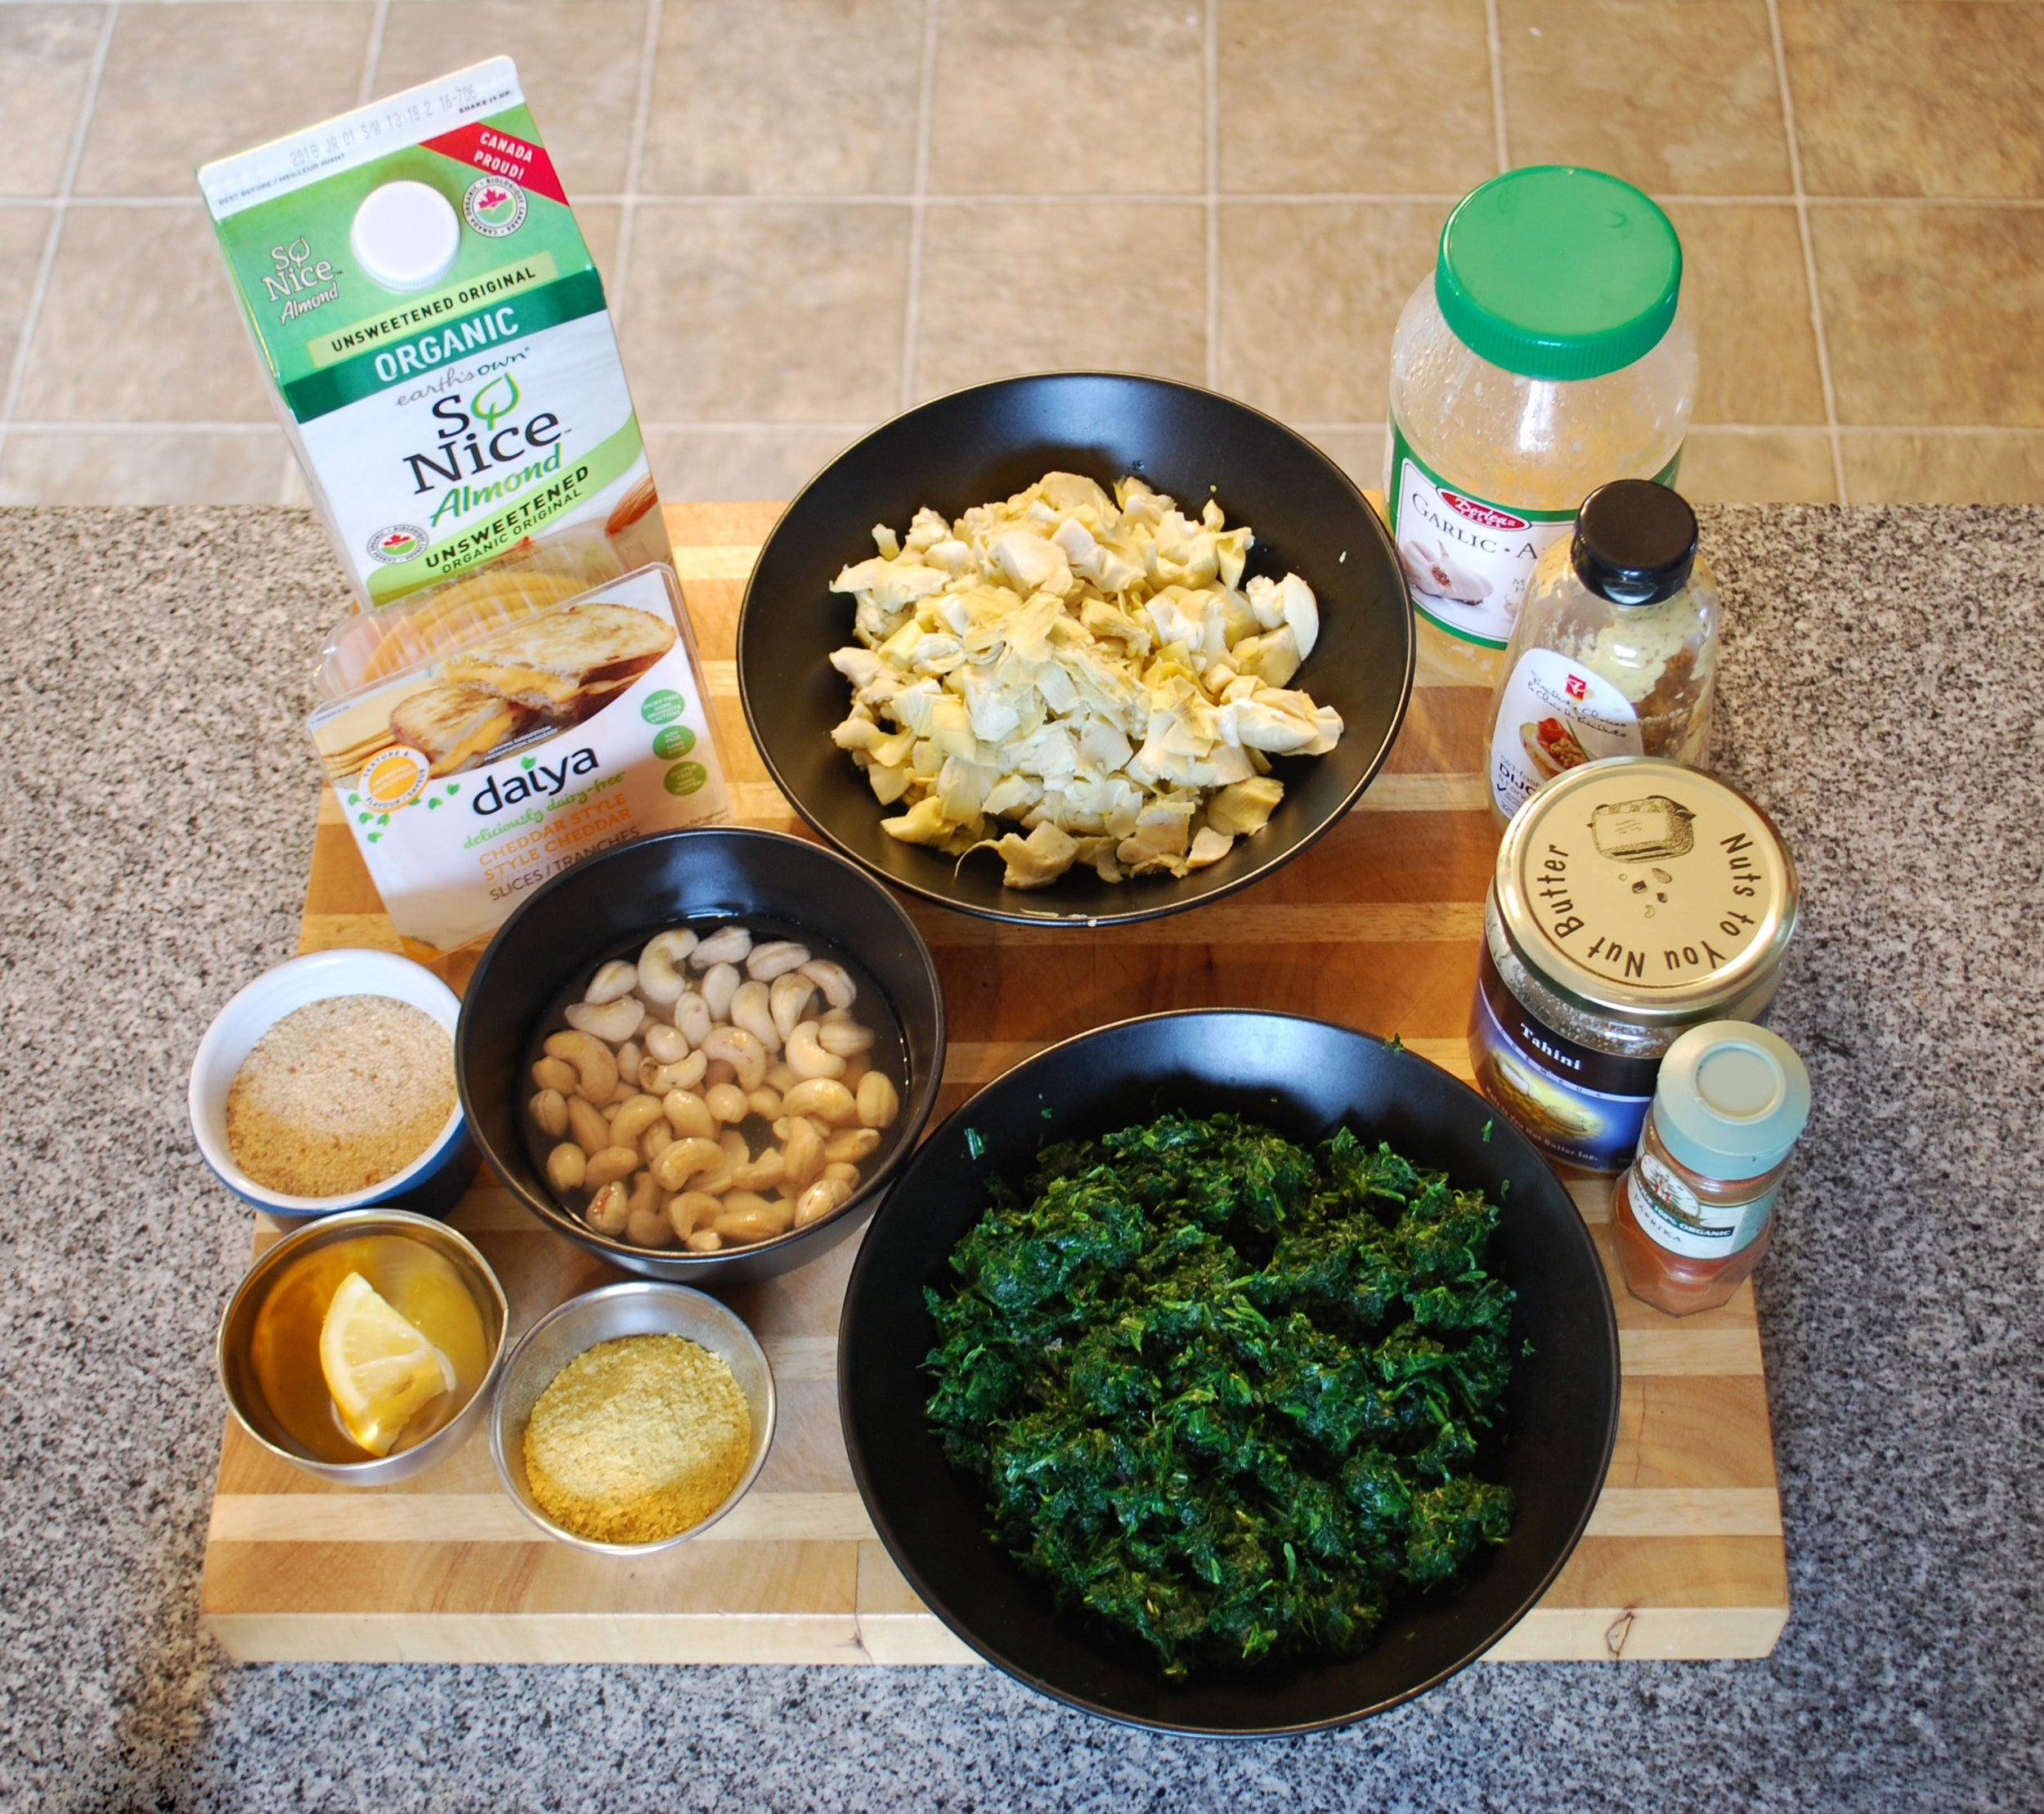 Artichoke and Spinach Dip ingredients